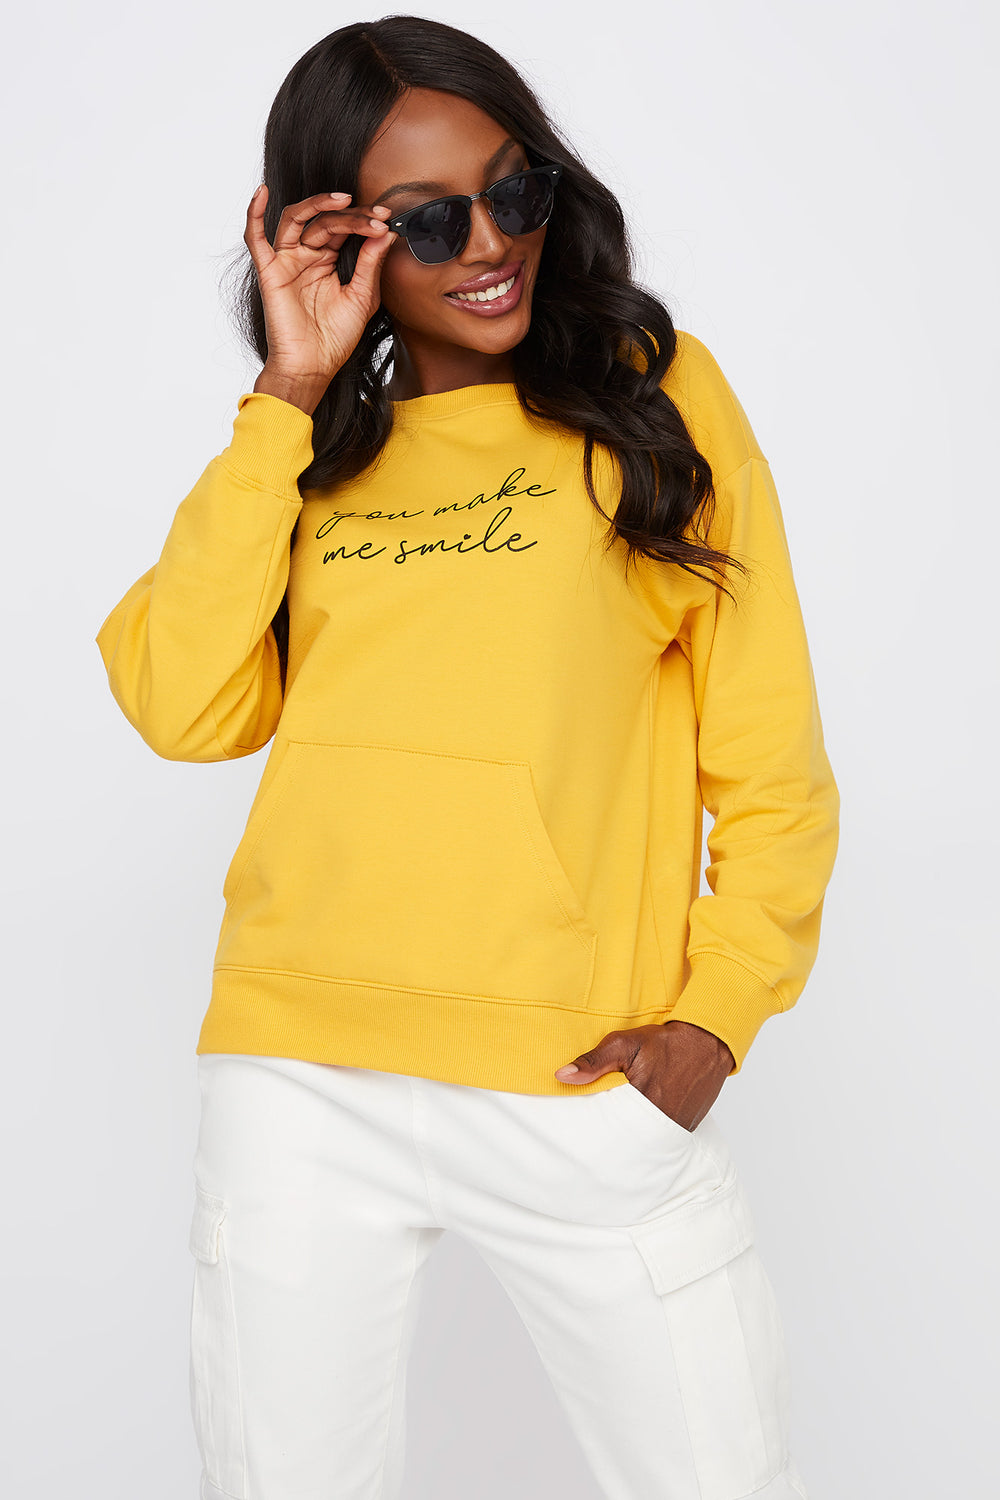 Graphic You Make Me Smile Crew Neck Sweater Mustard